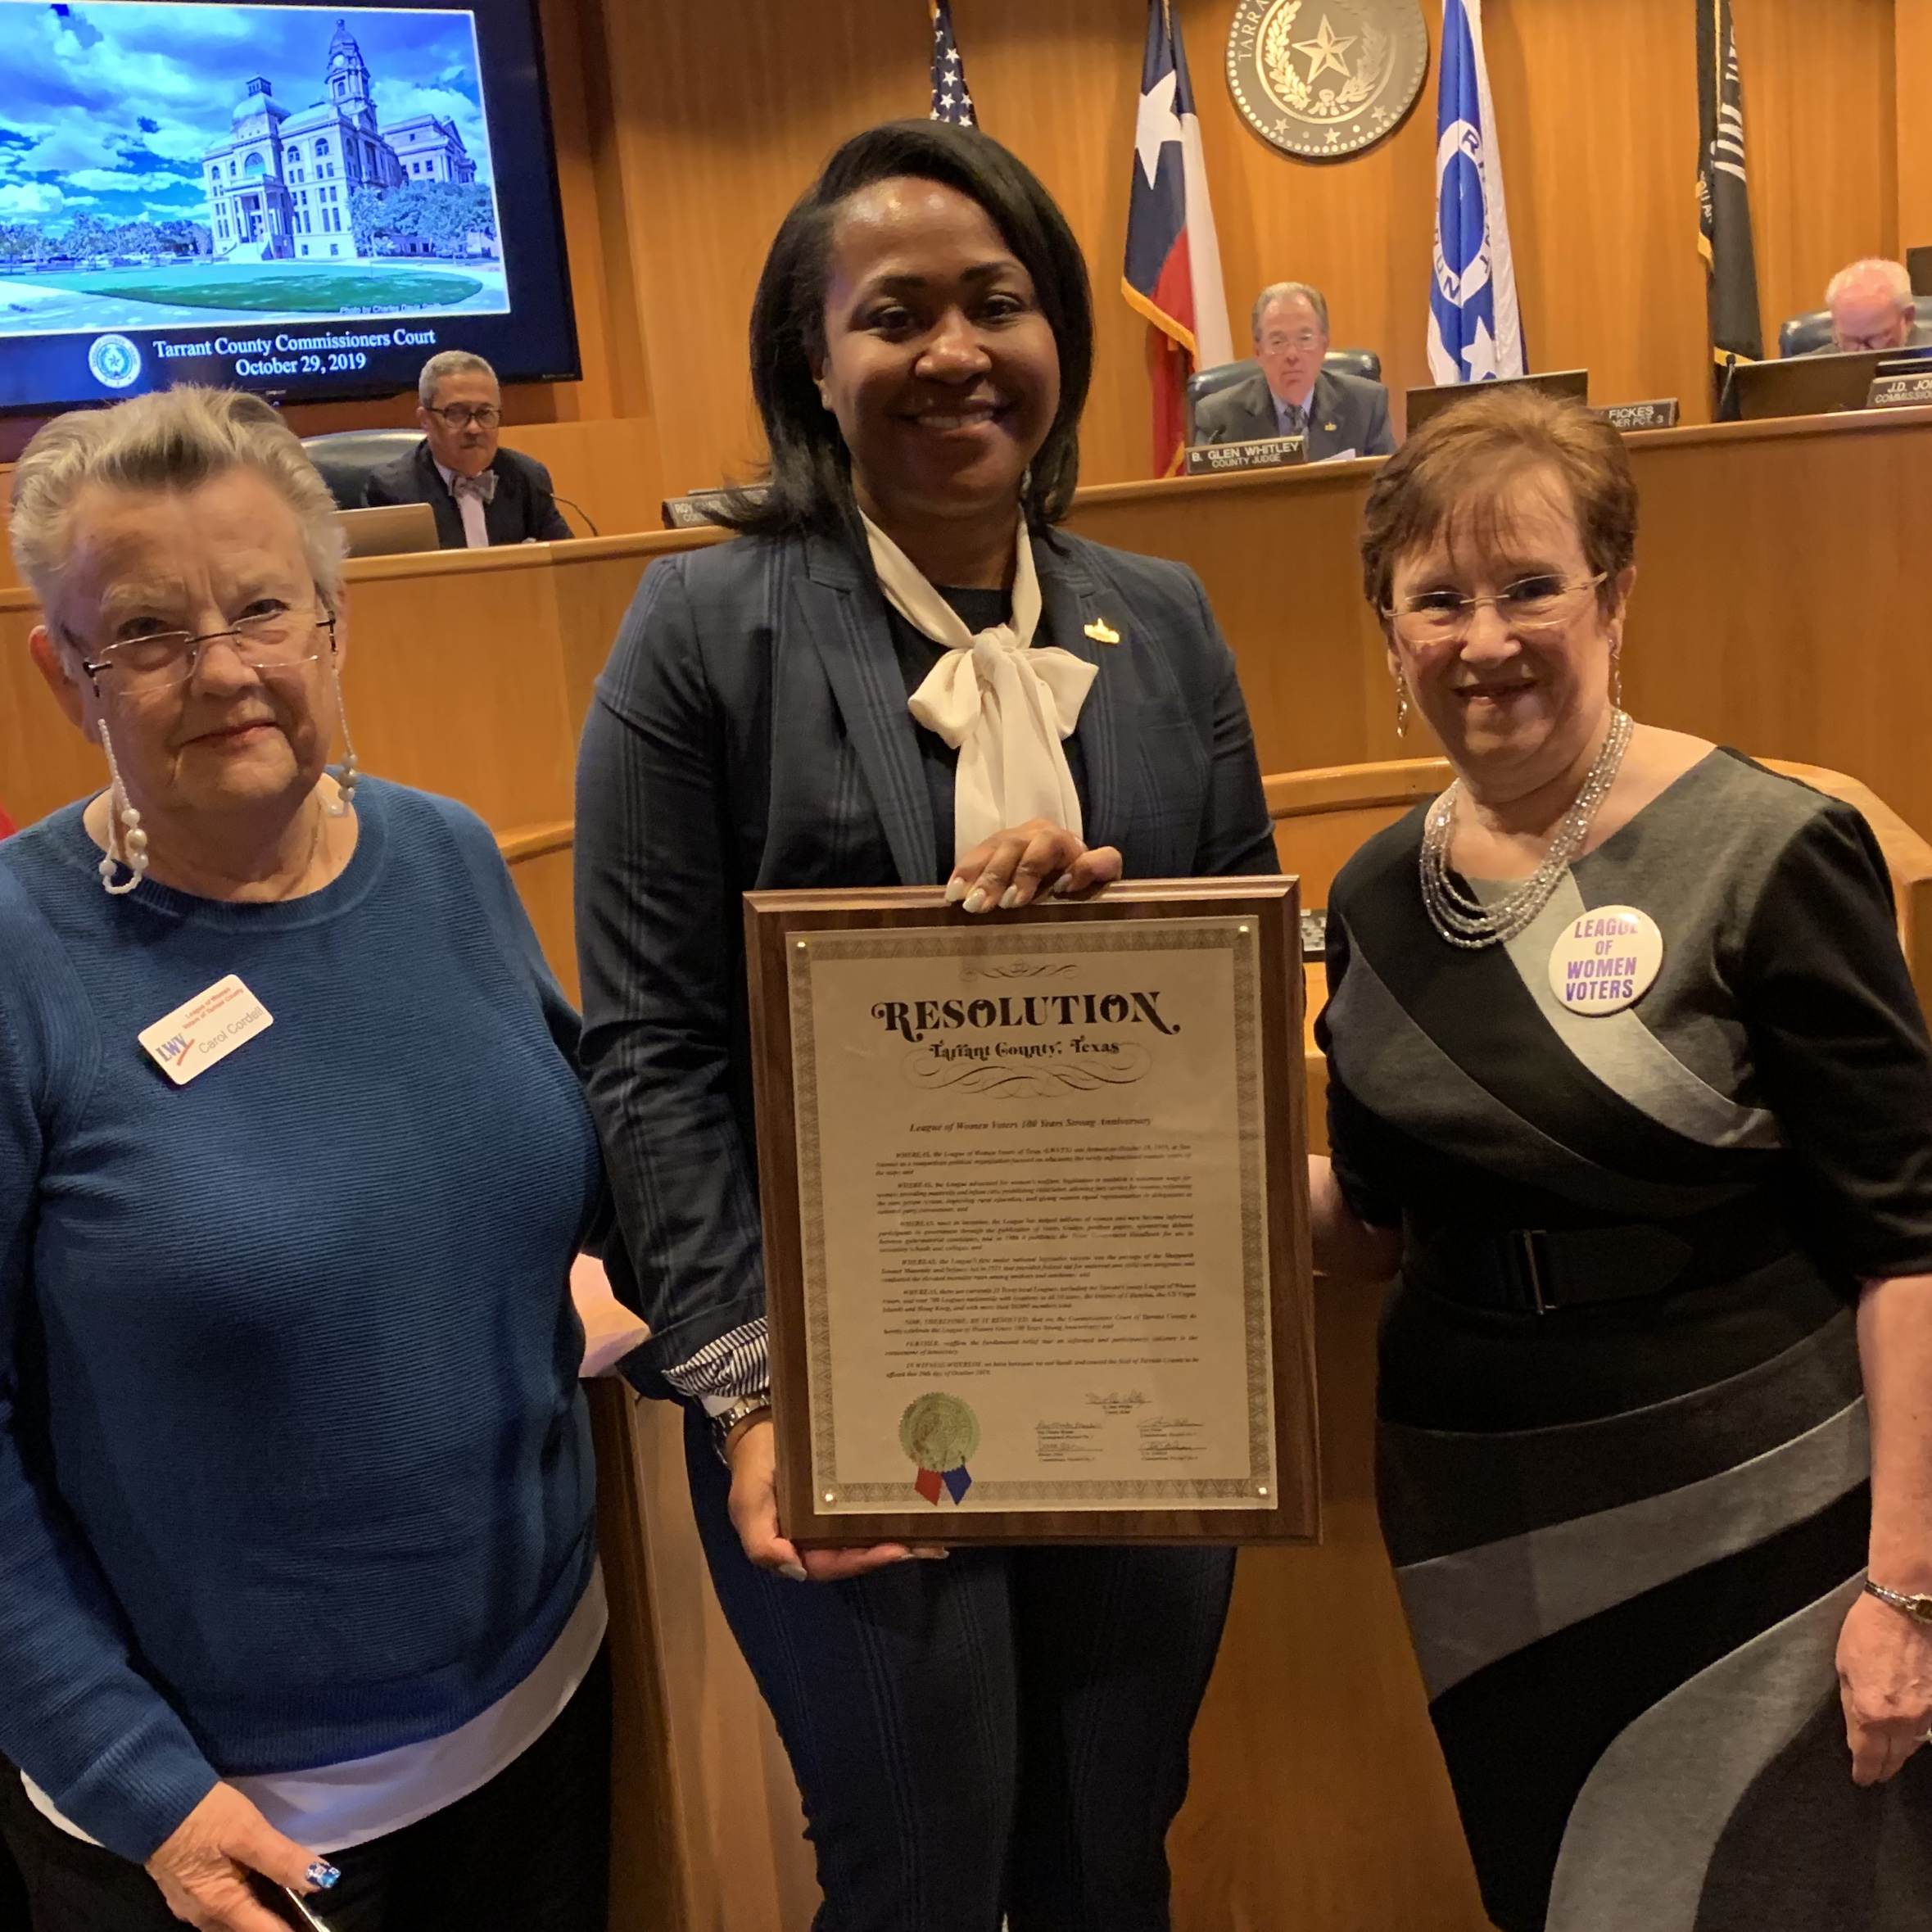 LWV Tarrant County honored by Commissioners Court Resolution